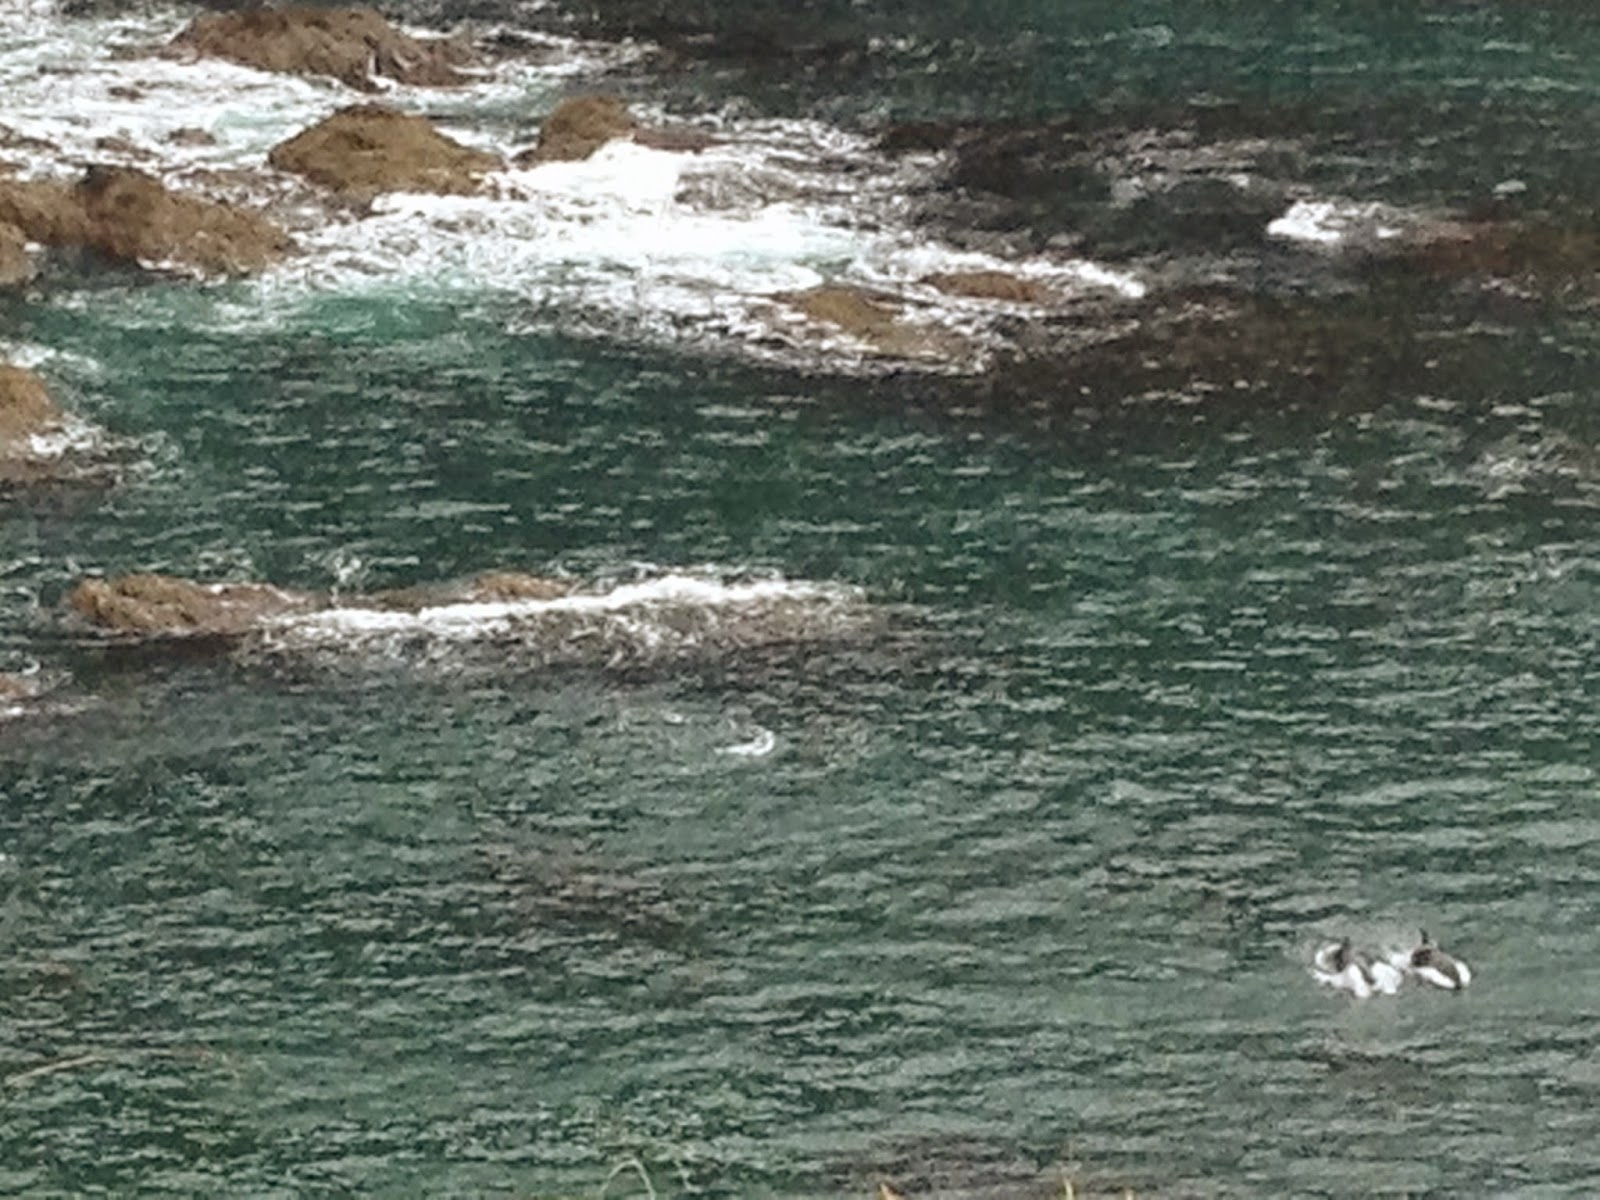 Dolphins jumping in the Bay of Islands